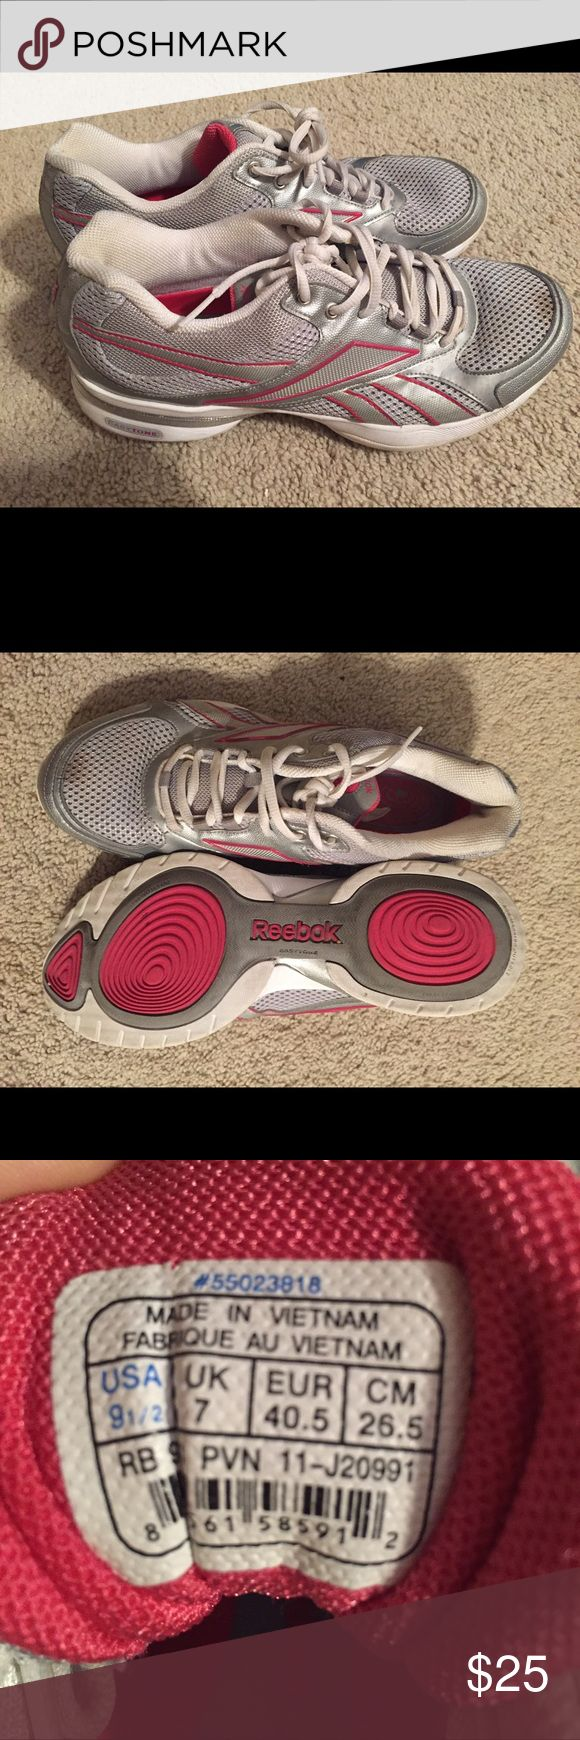 Reebok EasyTone tennis shoes Size 9.5. Barely used. Meant to tone legs just by walking with the EasyTone technology. Small stain on front of right shoe, may come out in the wash. Reebok Shoes Athletic Shoes